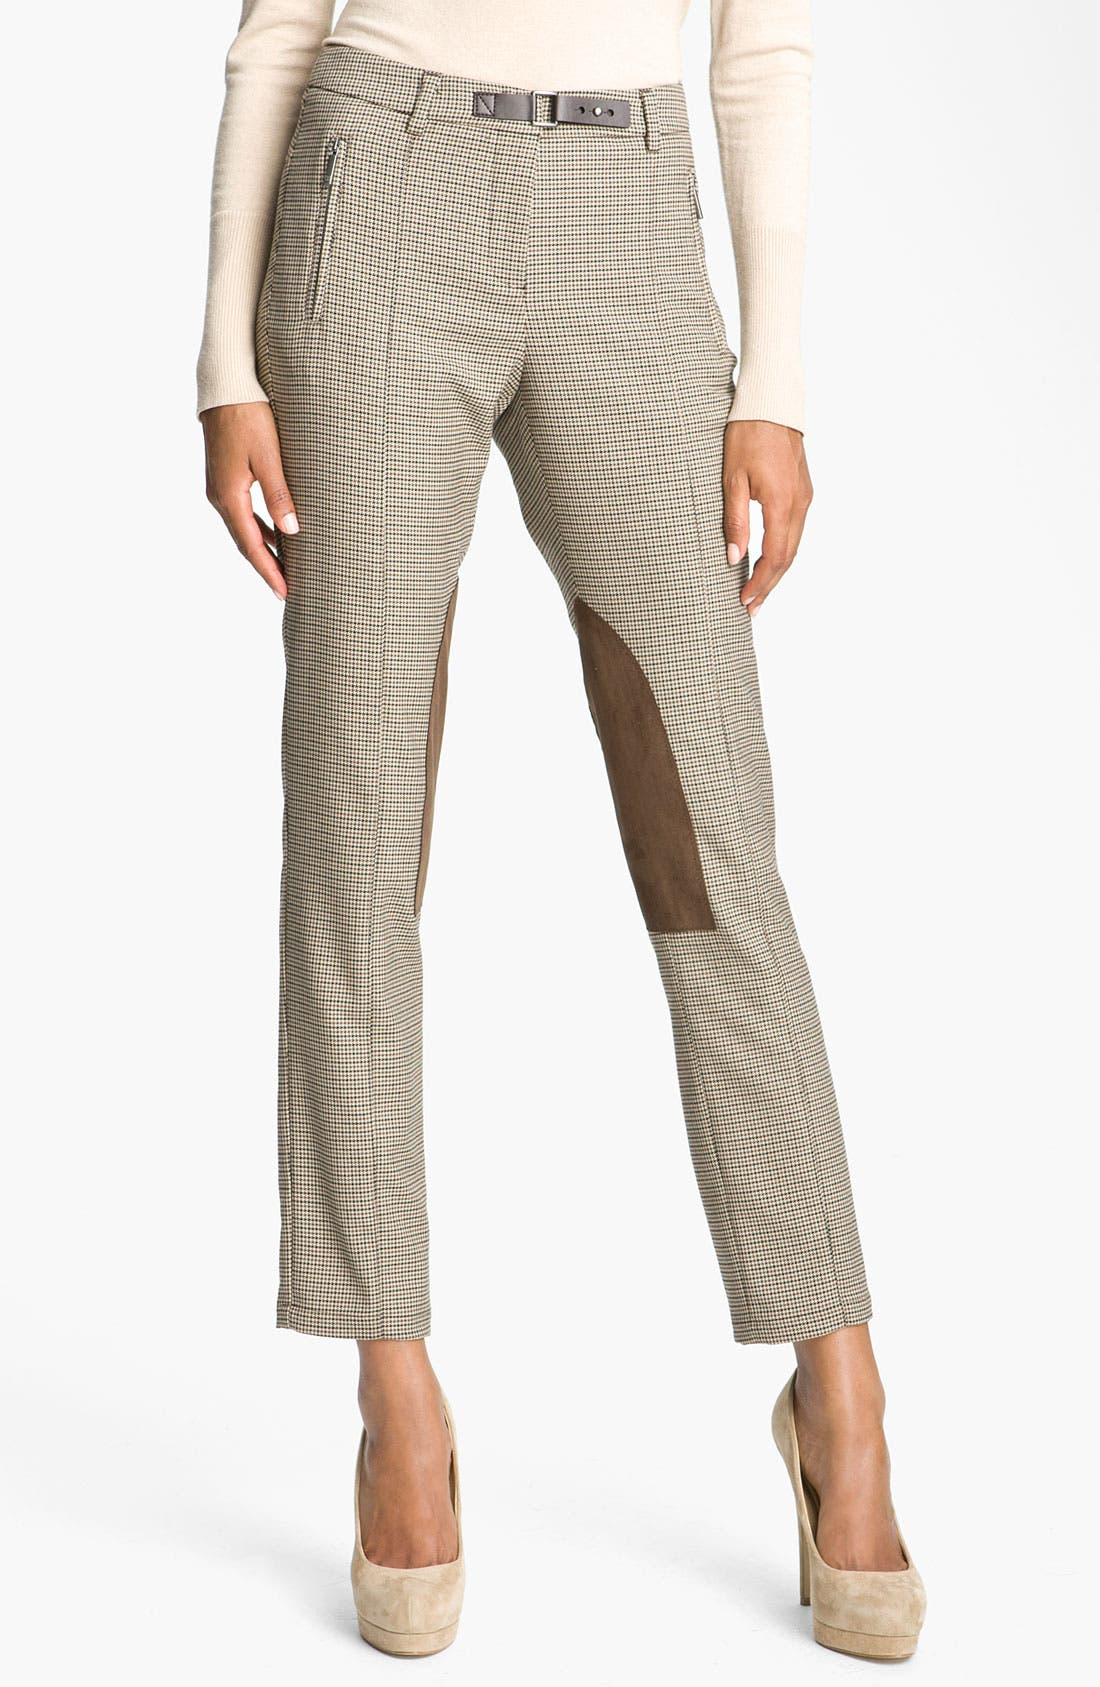 Alternate Image 1 Selected - Weekend Max Mara 'Fosca' Crop Pants